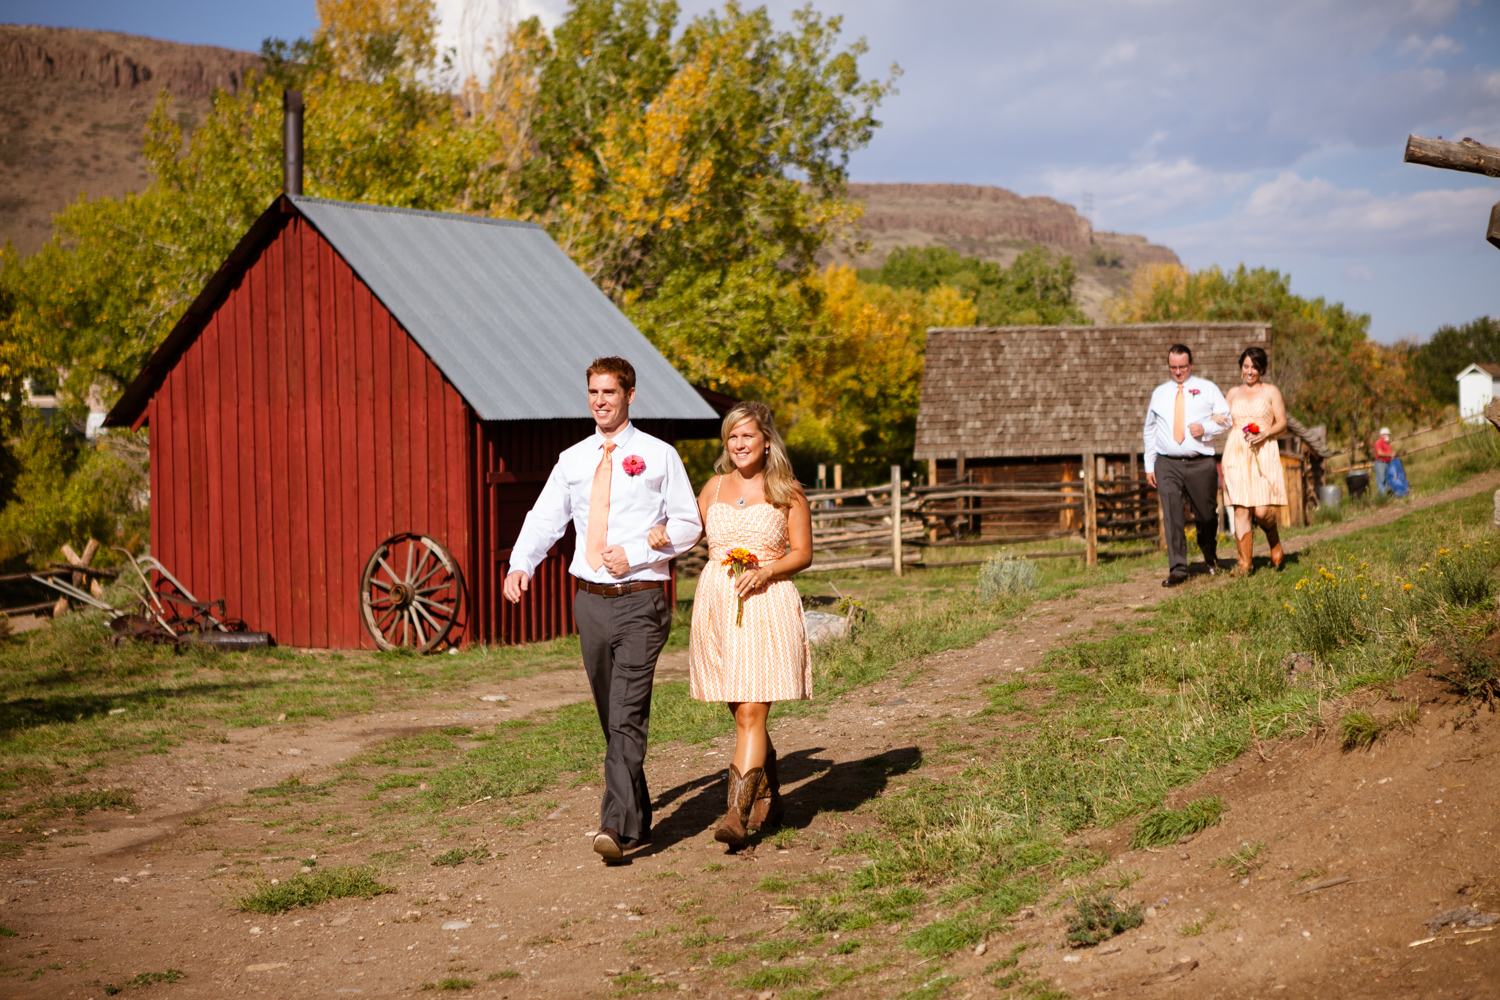 Coal_Creek_Canyon_Wedding_040.JPG